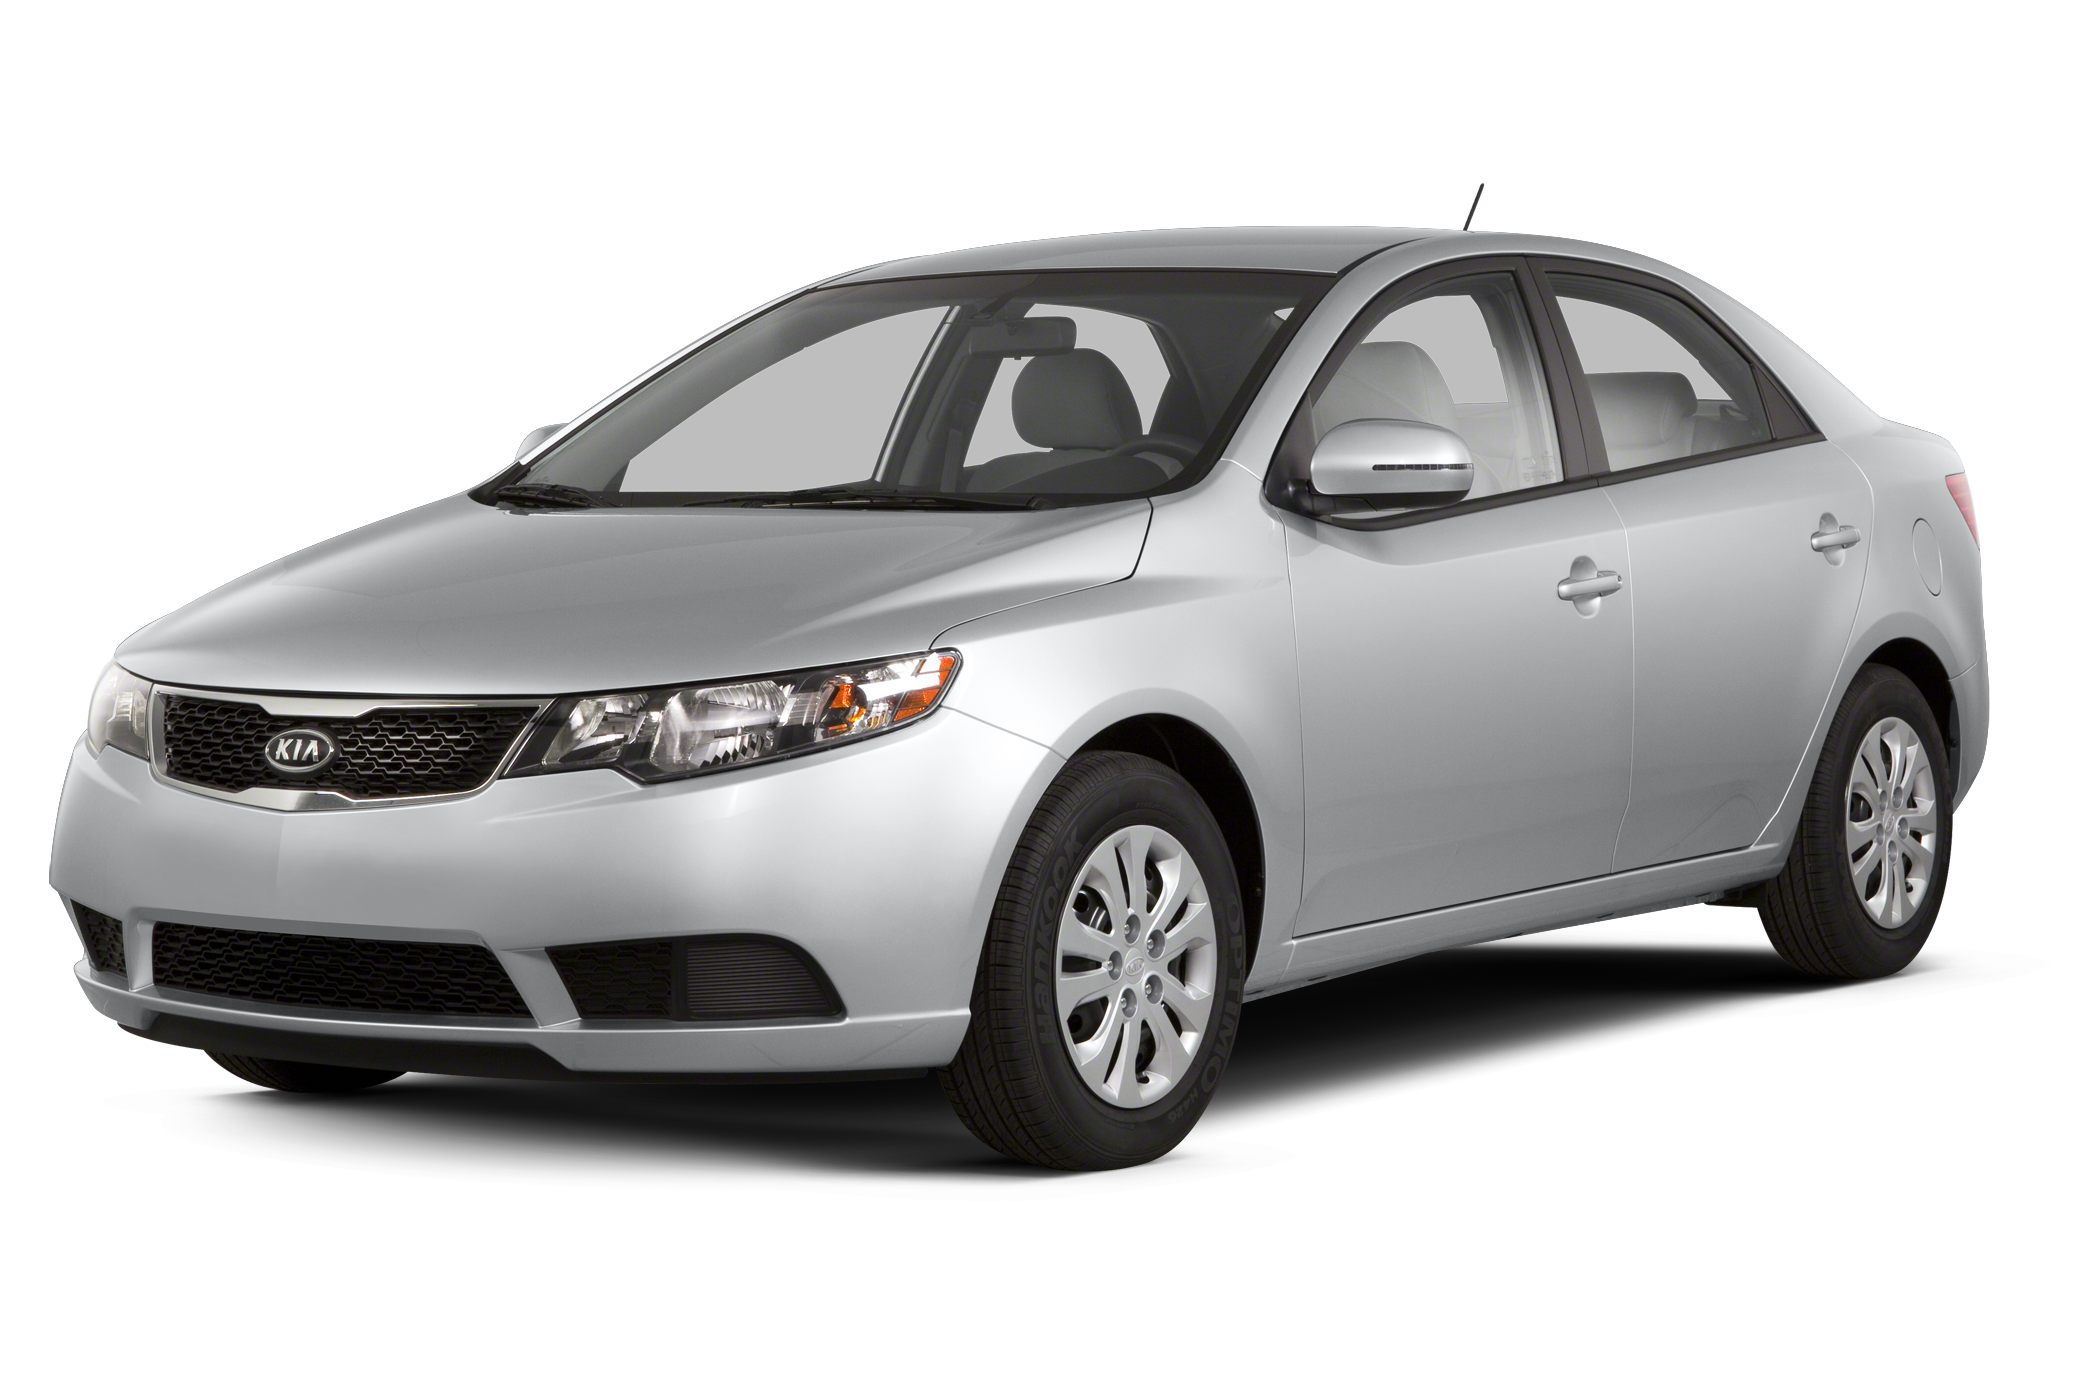 2013 Kia Forte LX Sedan for sale in Pendleton for $15,900 with 12,098 miles